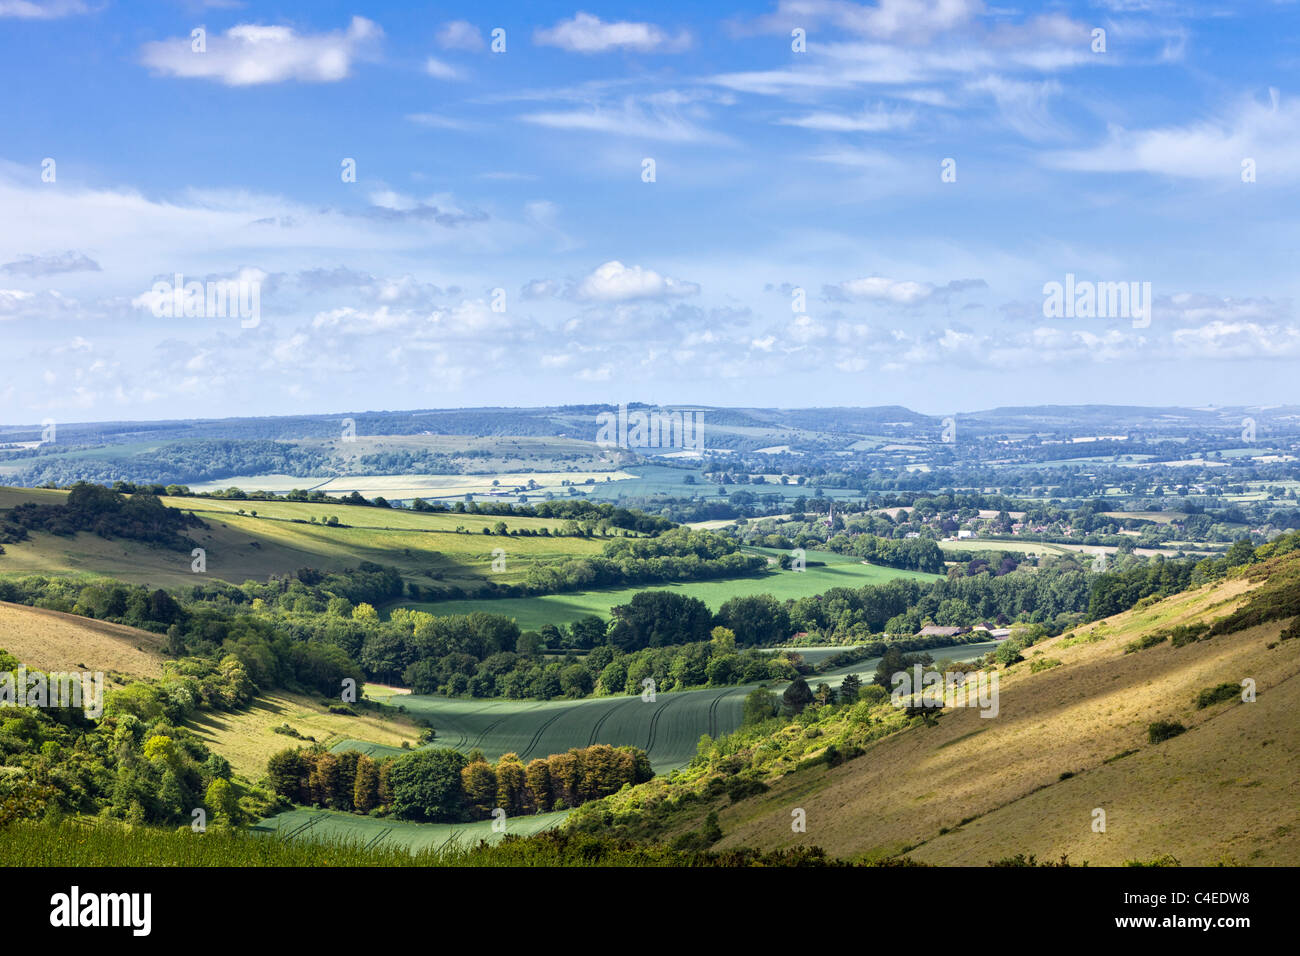 English countryside view of rolling hills in the english countryside, Dorset, England, UK - Stock Image